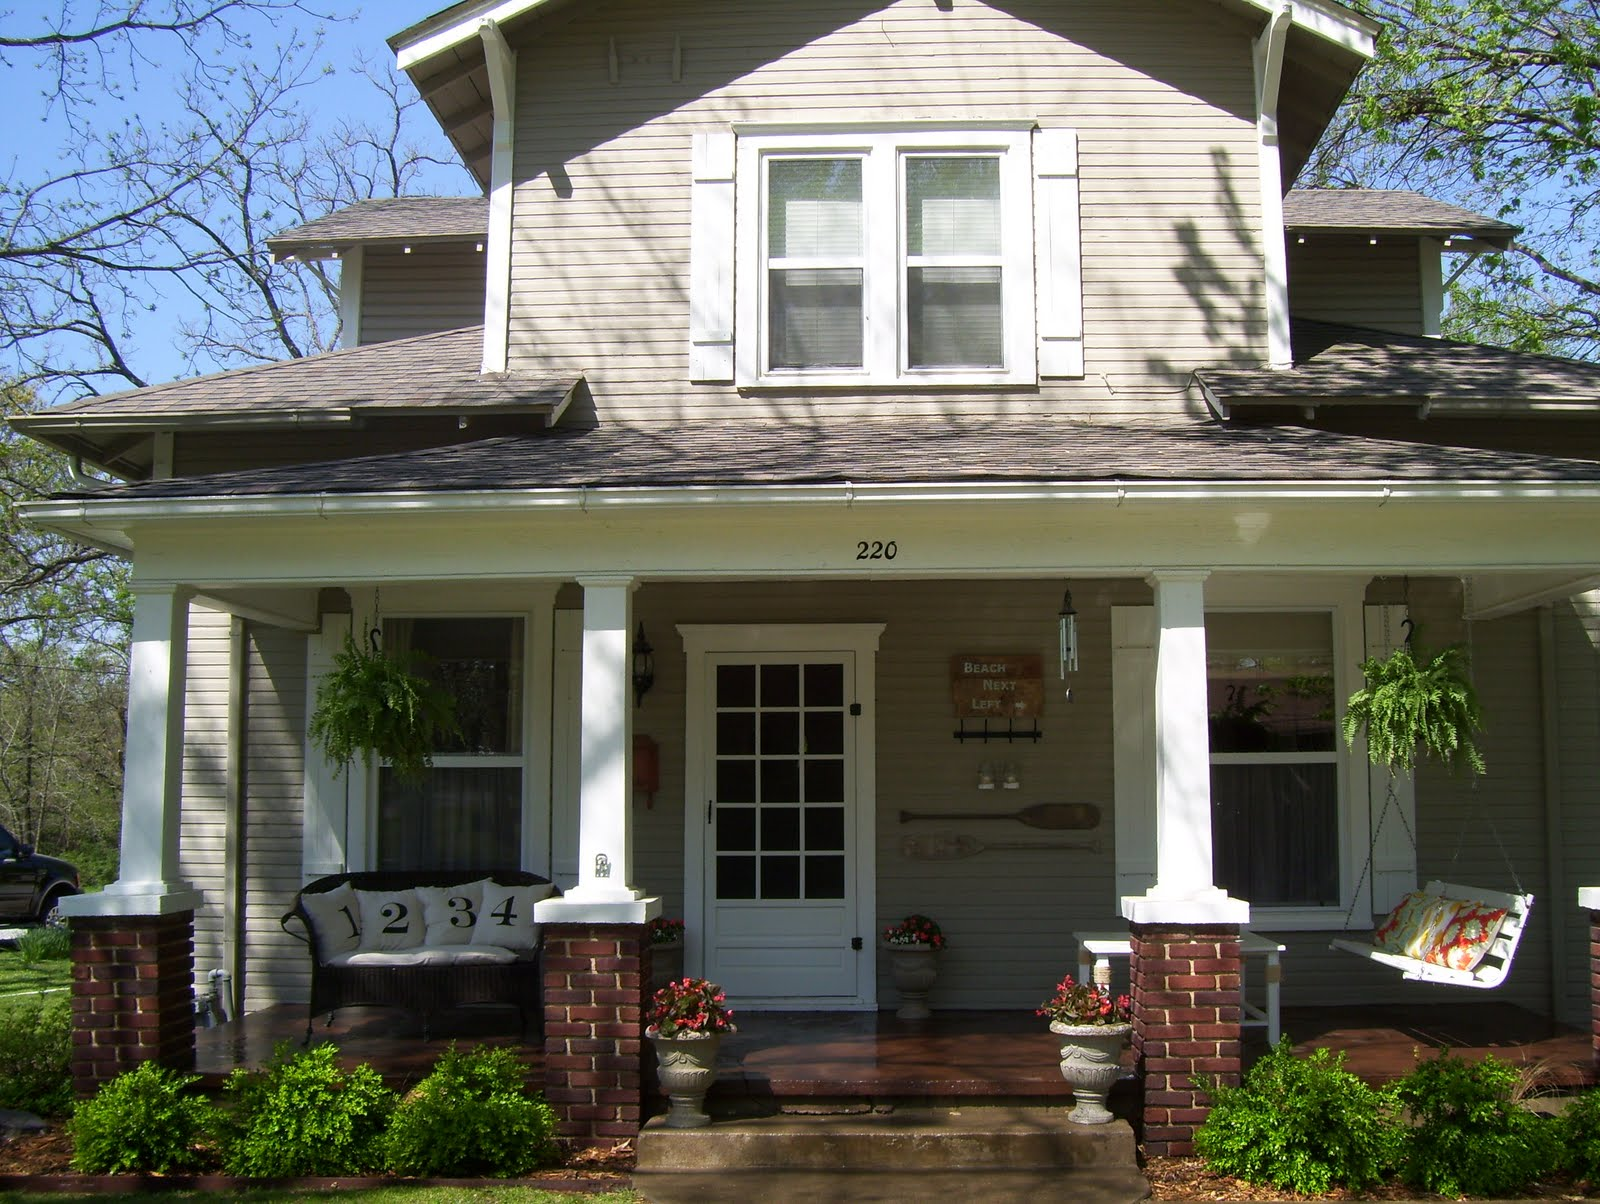 Our vintage home love front and side porch redo - Vintage front porch decorating ...